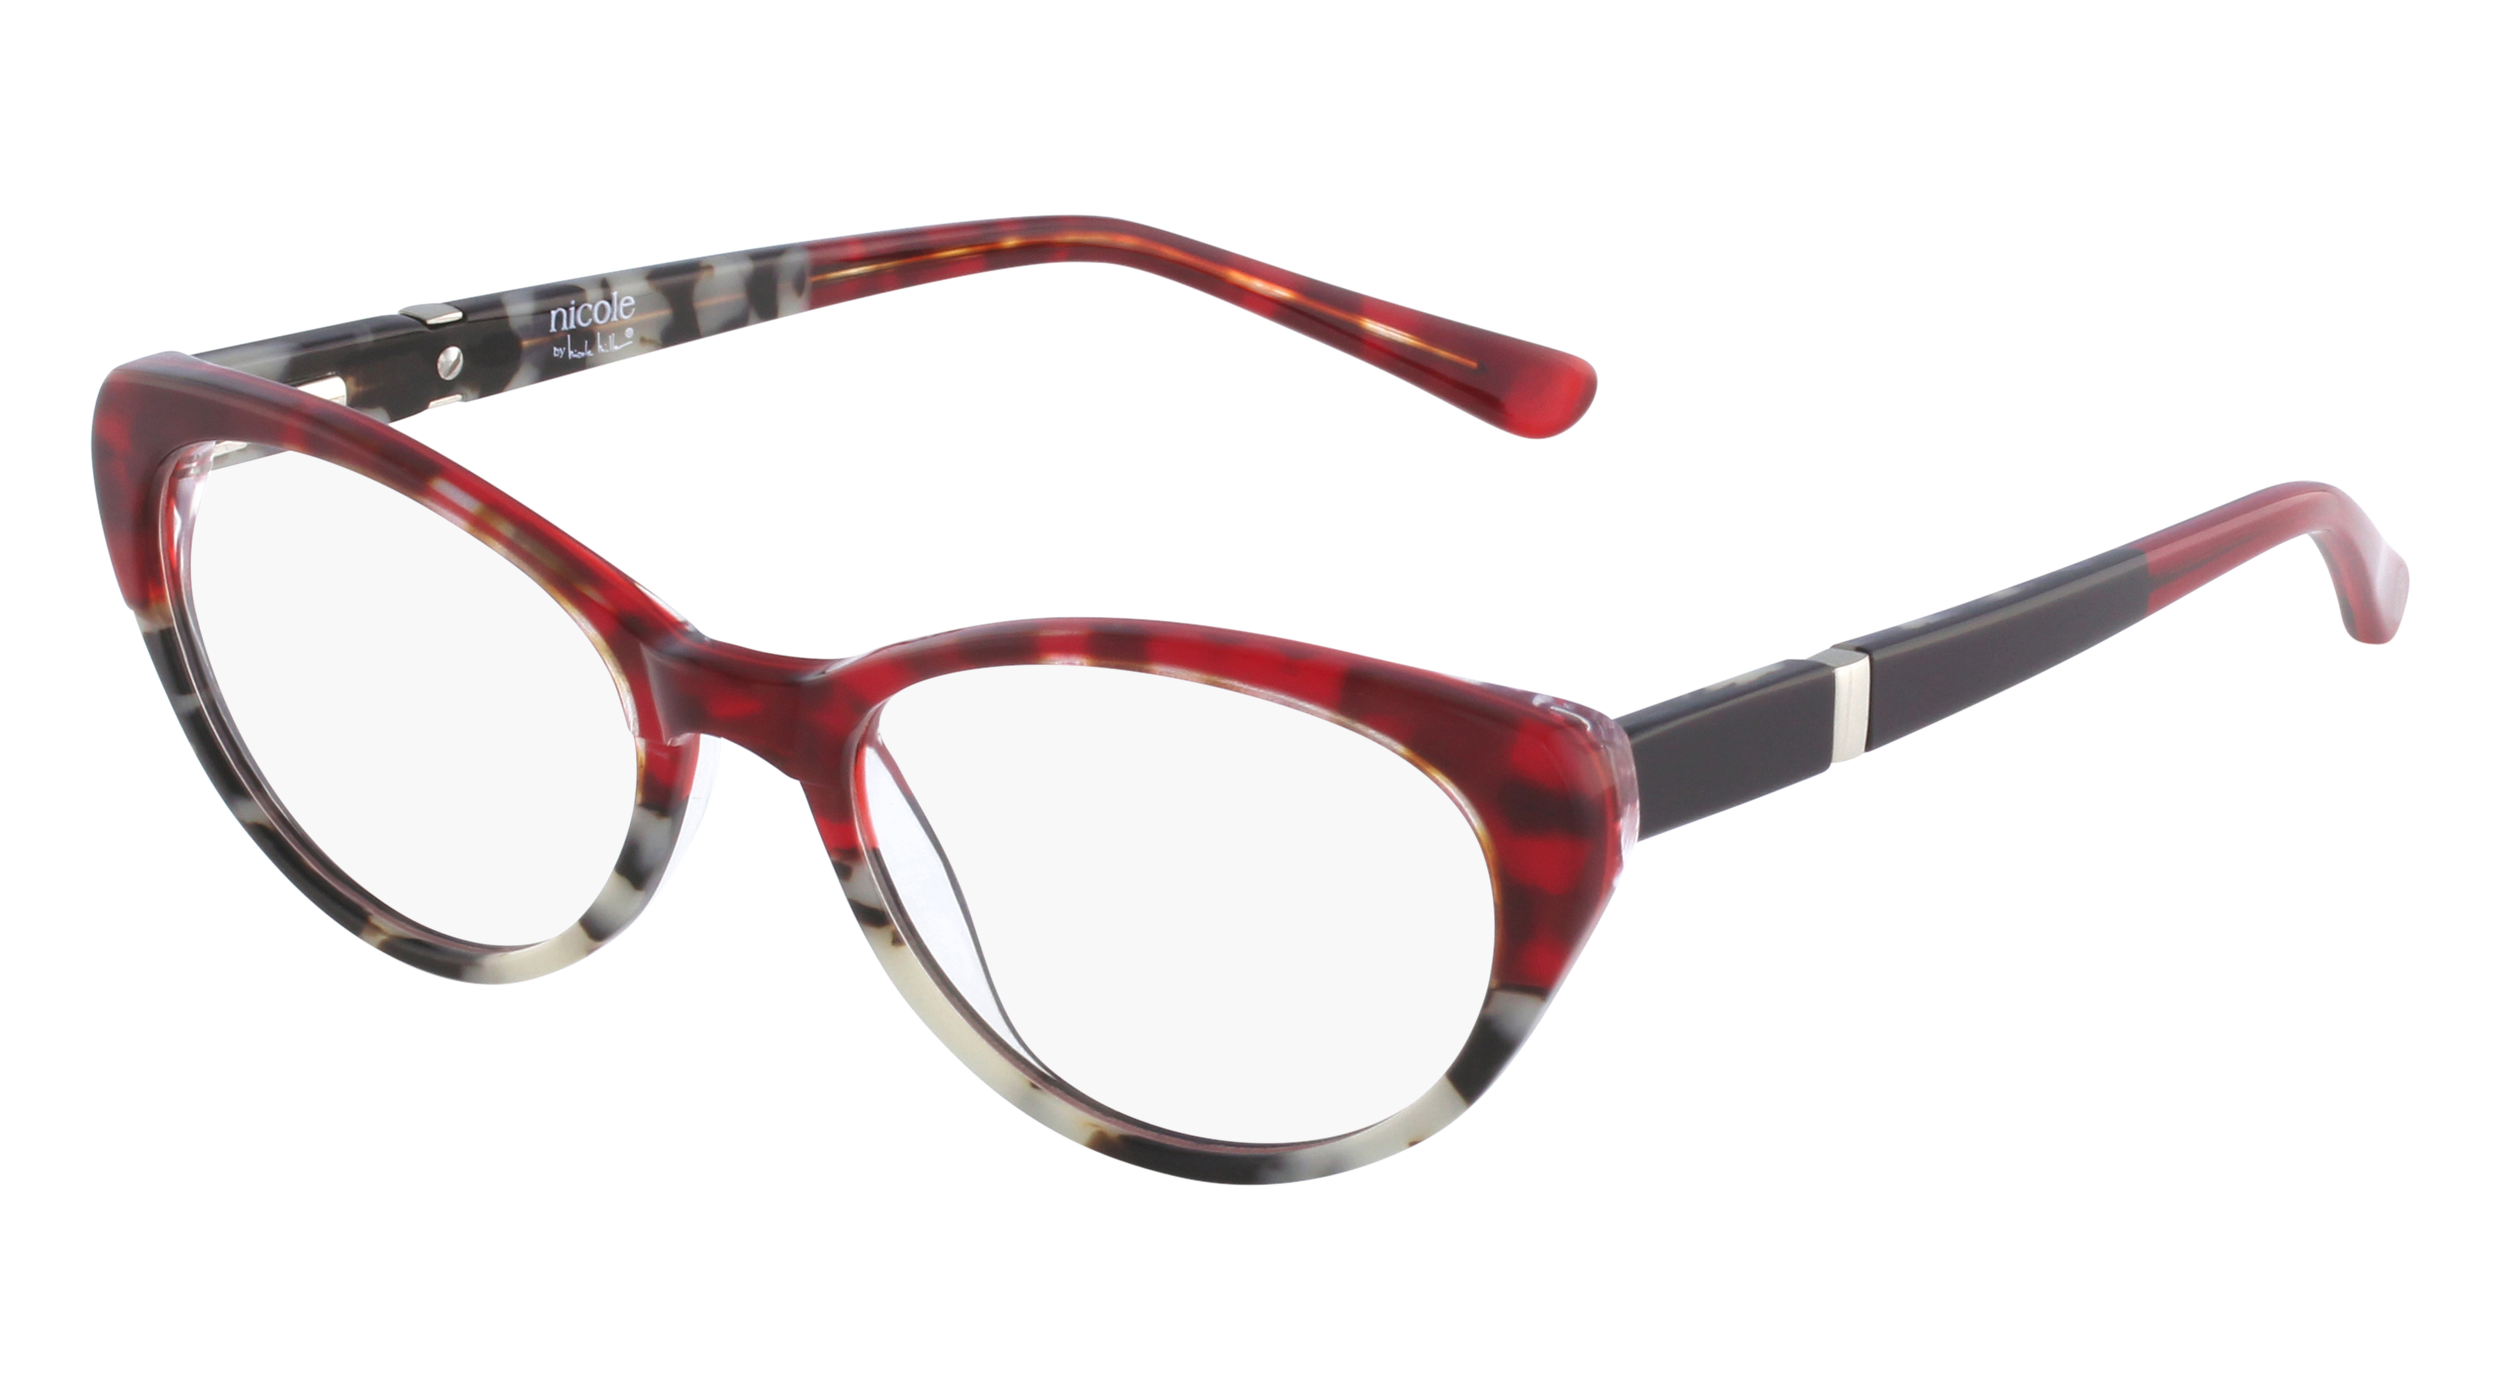 nicole by Nicole Miller Square Glasses - JCPenney Optical ...